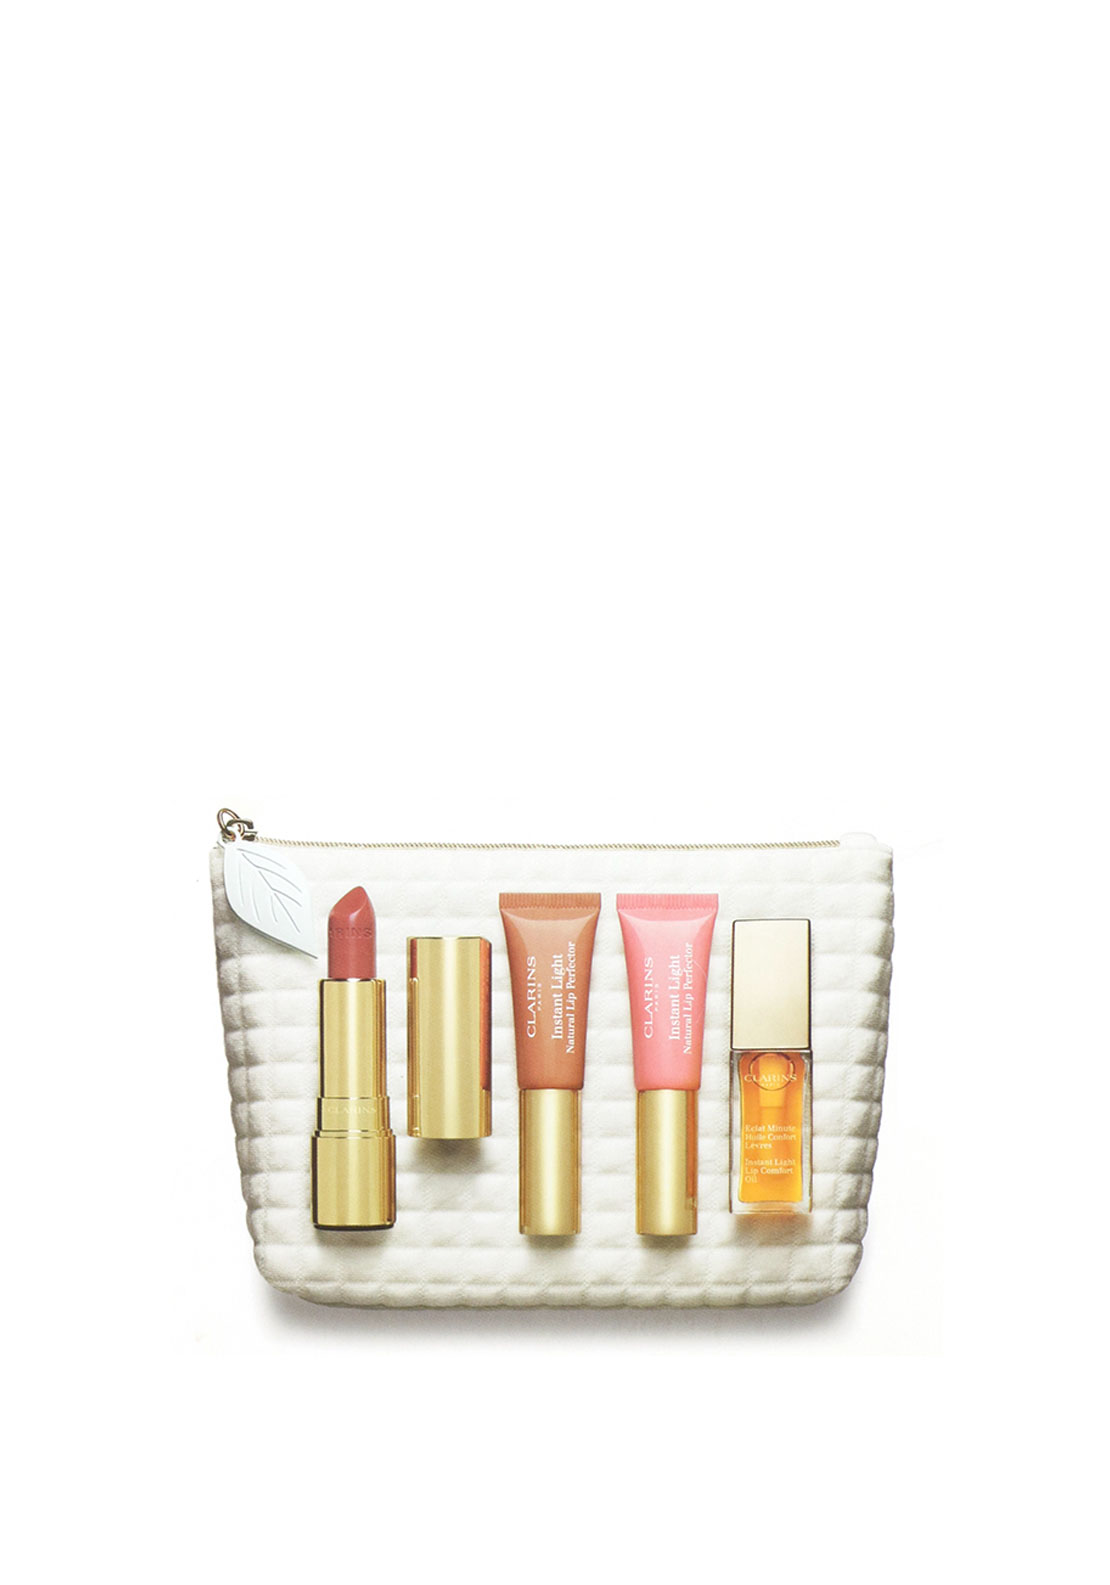 Clarins Christmas 'Luscious Lips Collection 'Gift Set